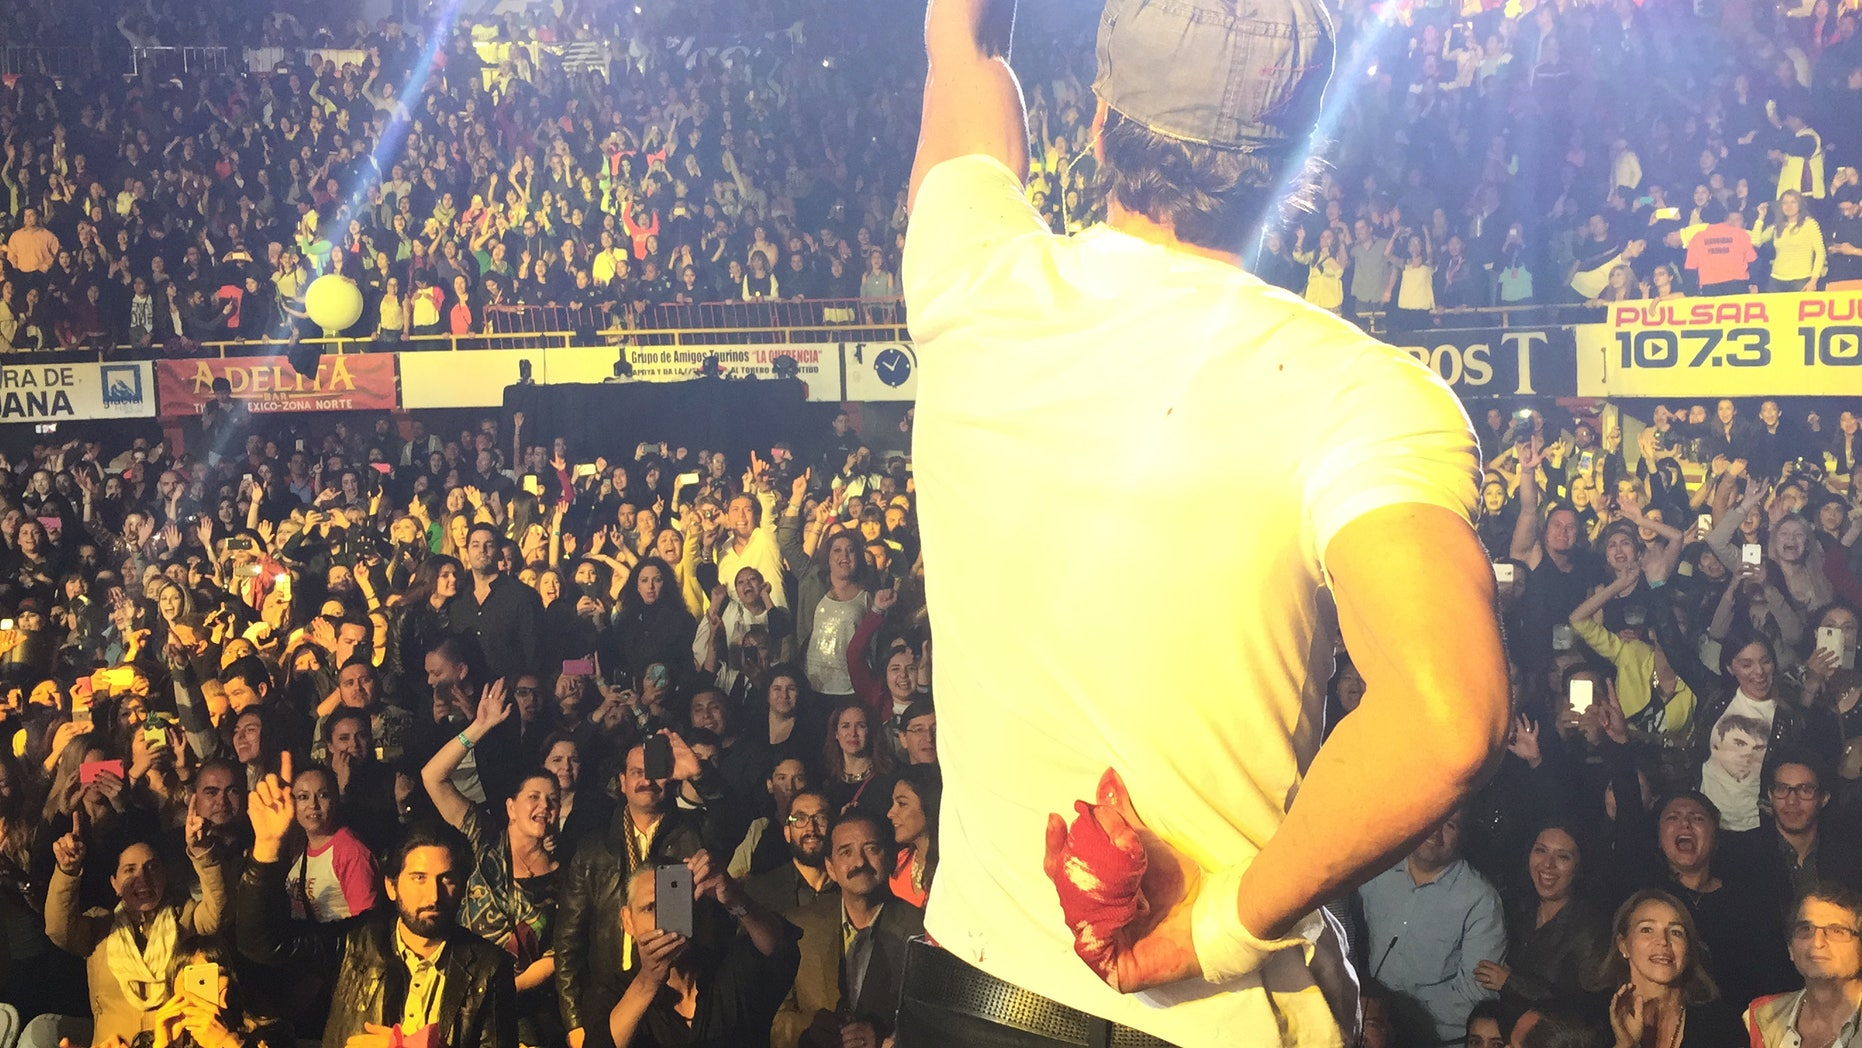 May 30, 2015. Enrique Iglesias holds his bloodied hand behind his back during a concert in Tijuana, Mexico.